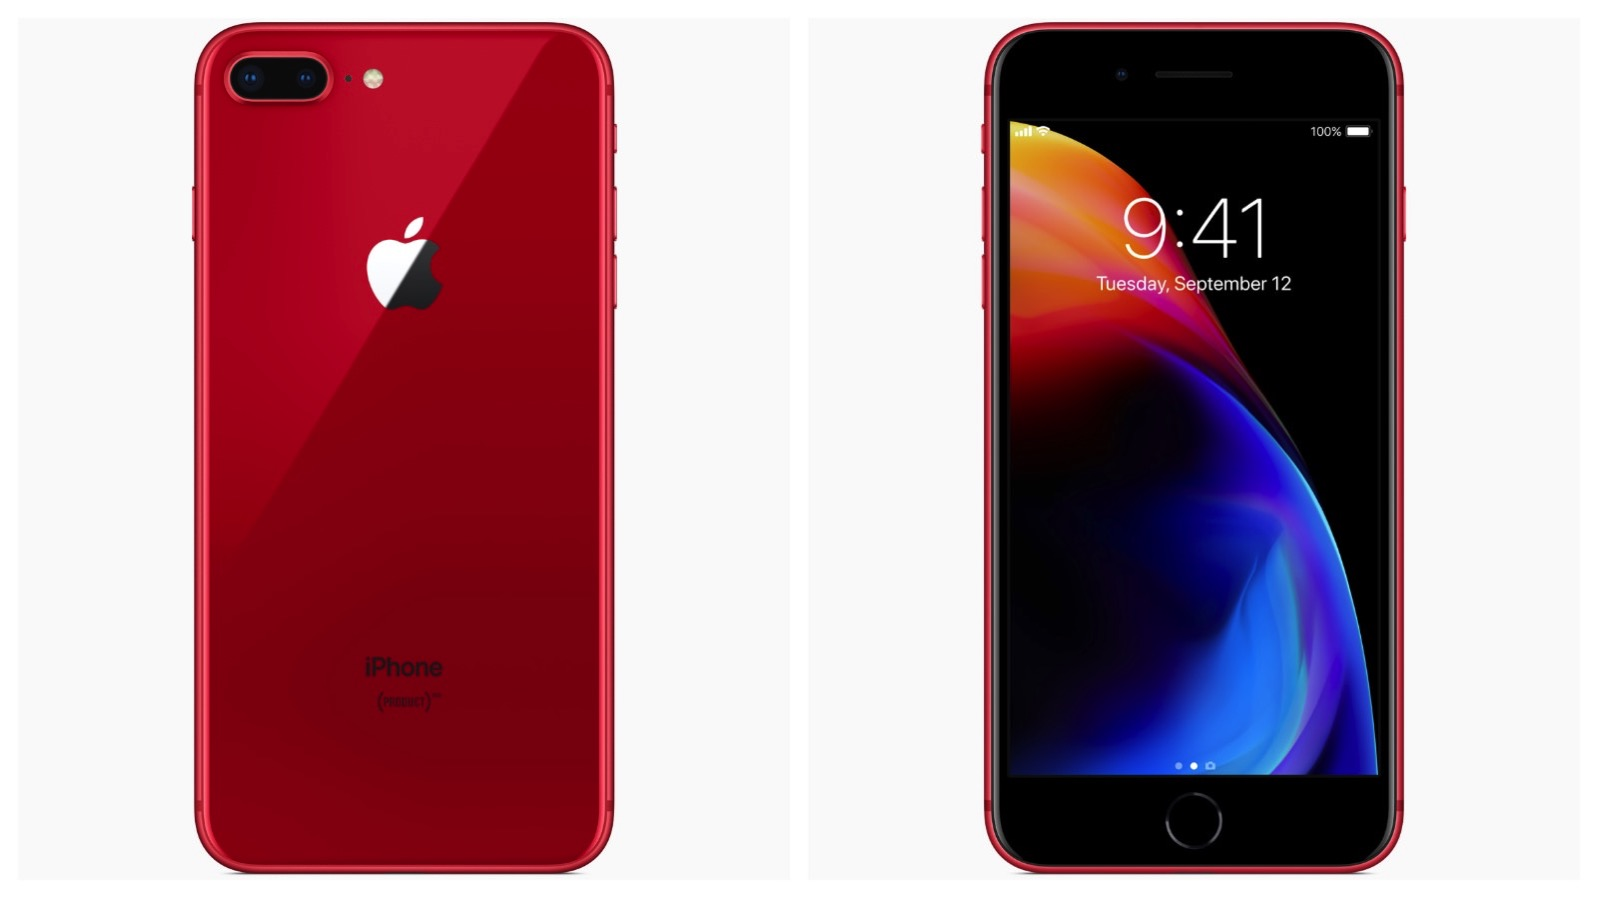 iphone8-8plus-product-red.jpg